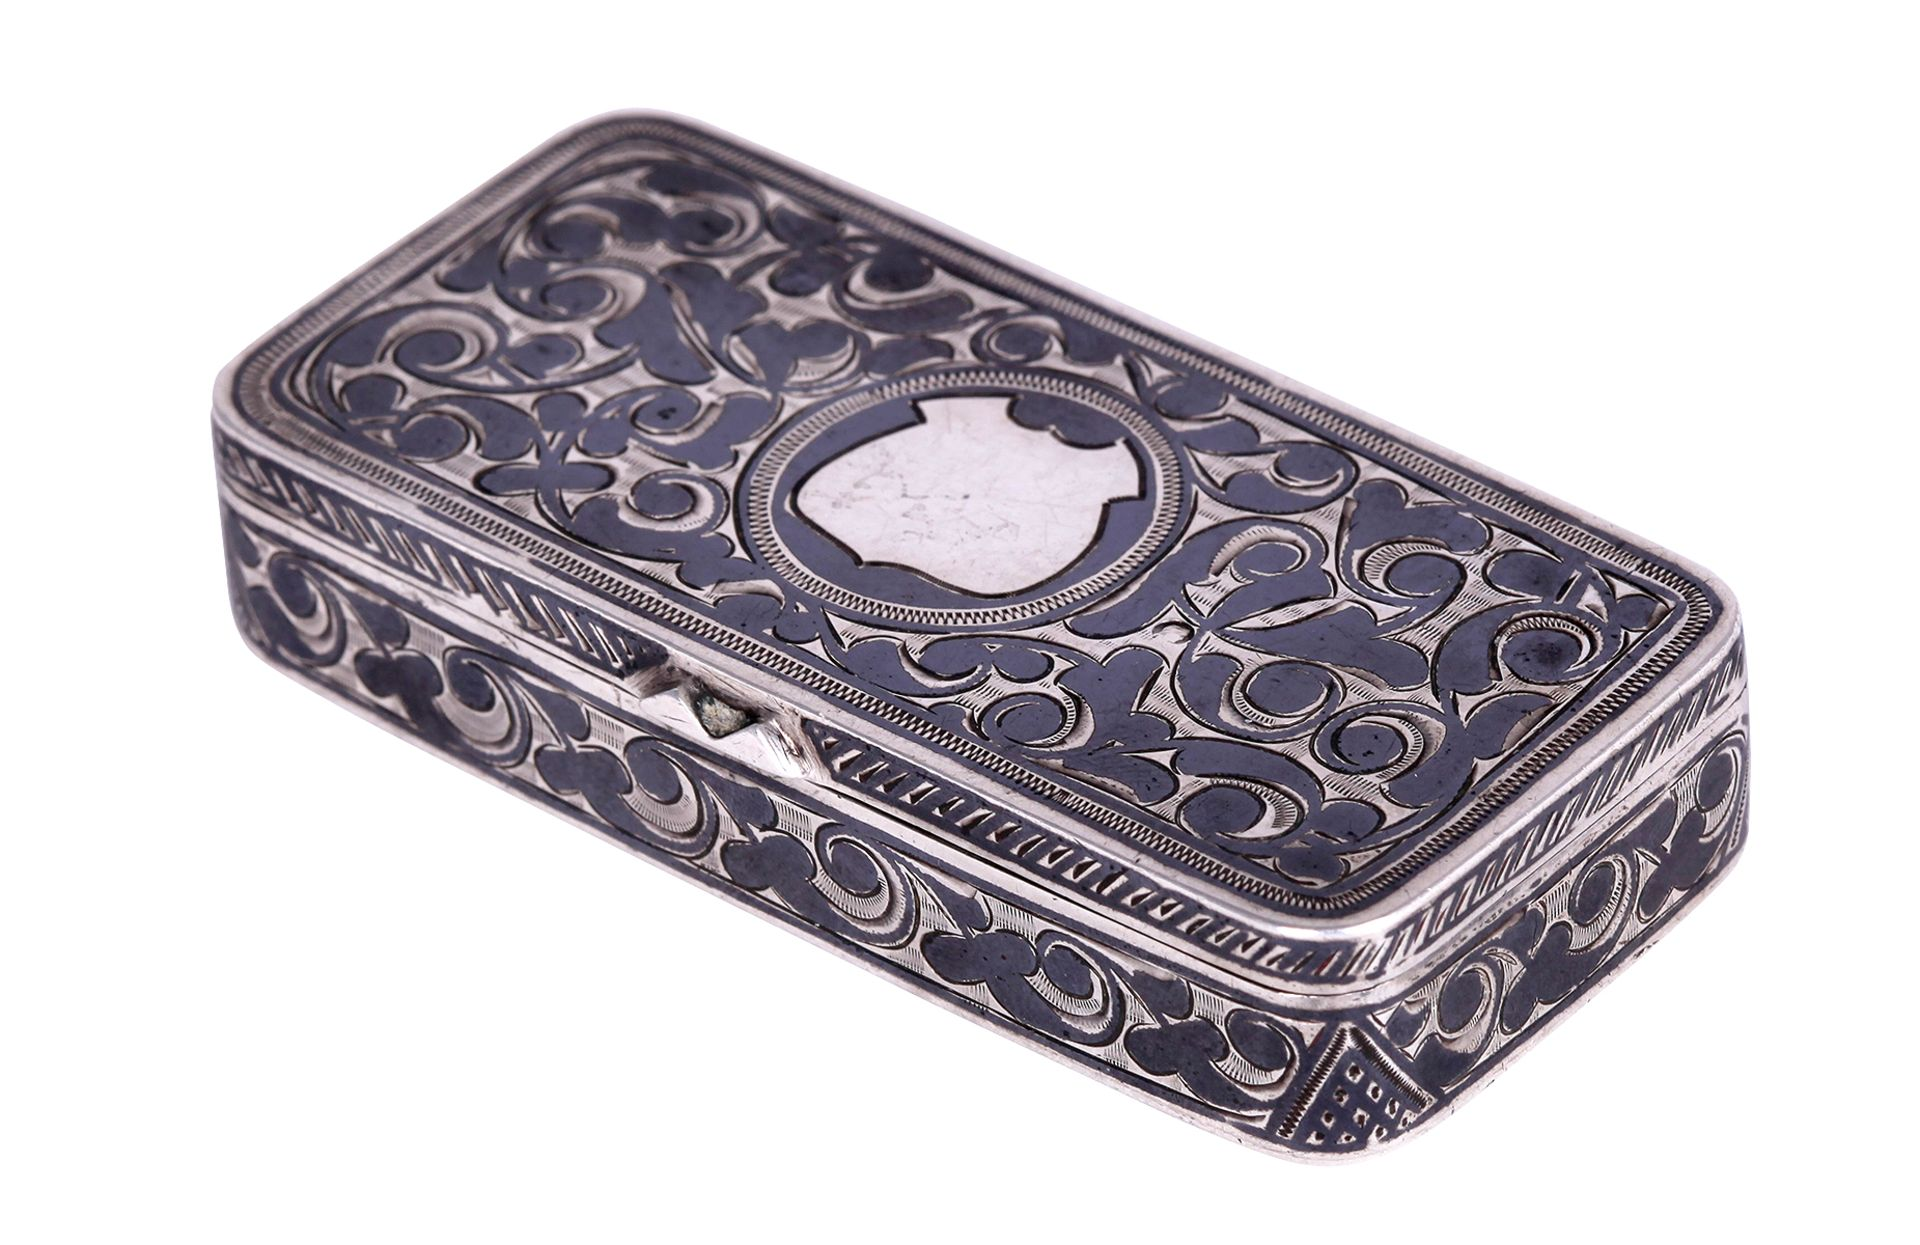 Silver pill box with floral ornament. The end of the 19th century. <br>Marks: 84 hallmark, head with